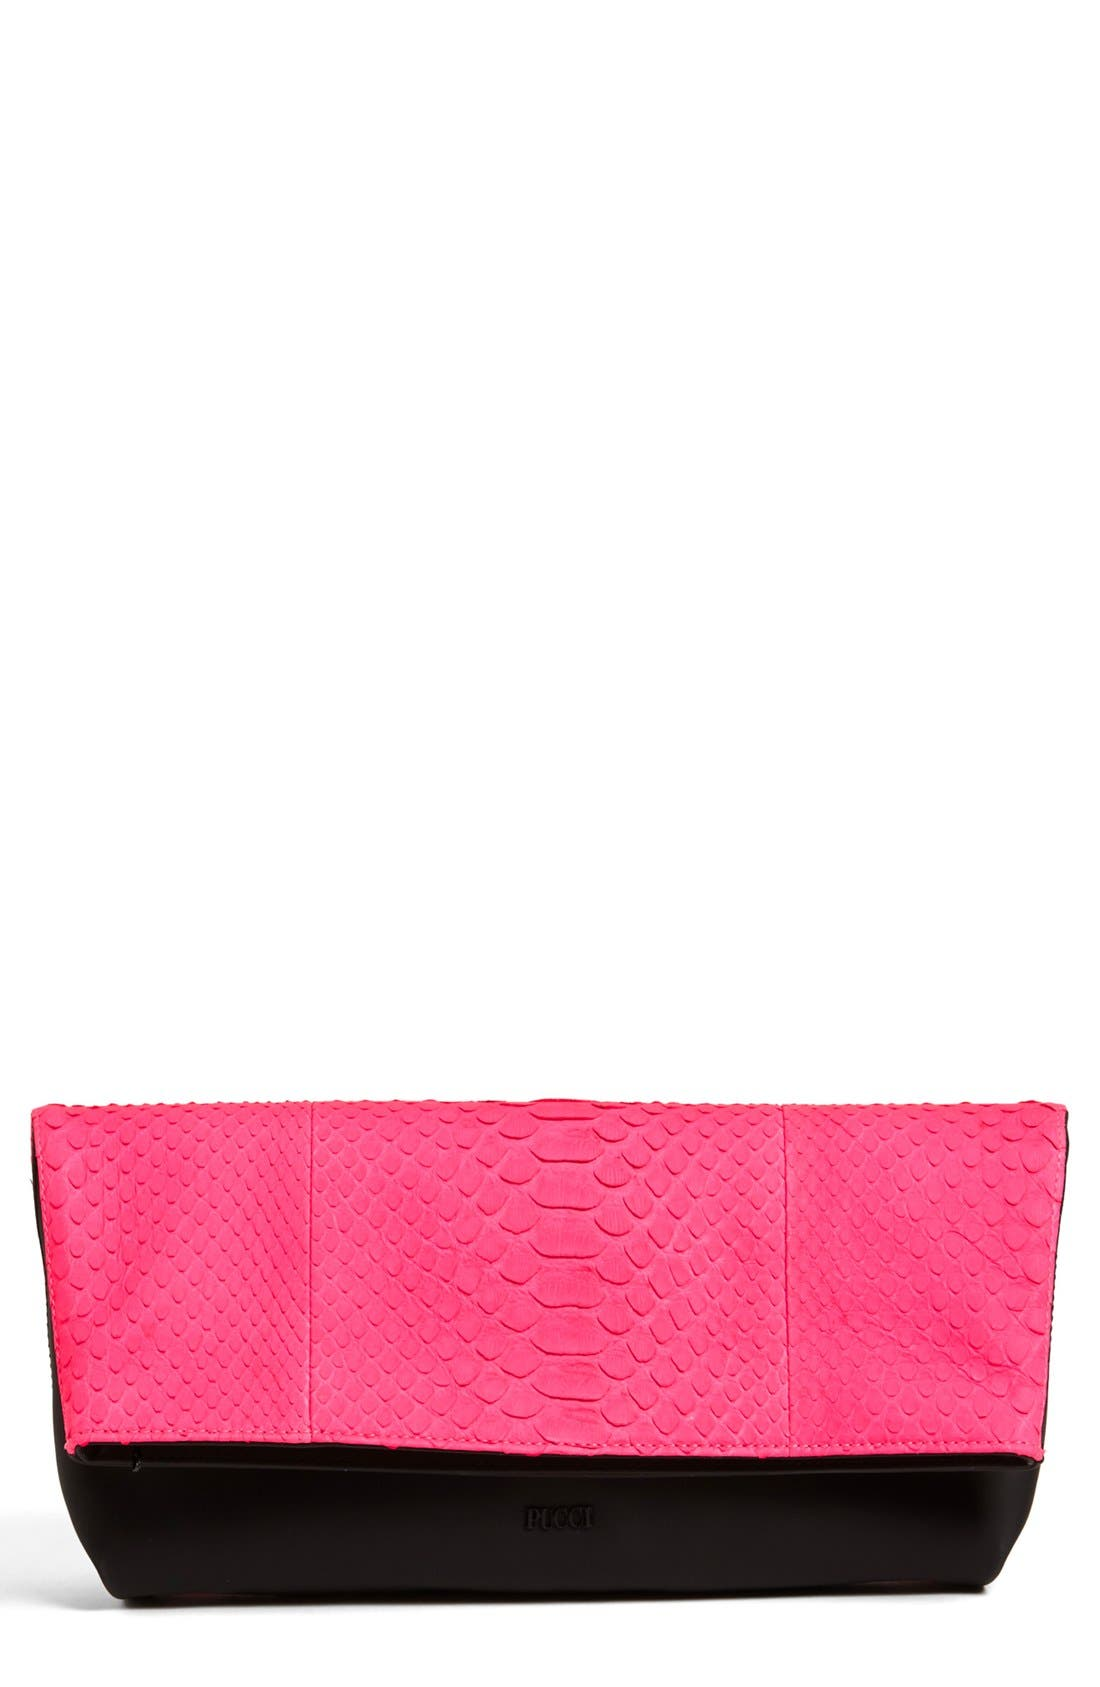 Alternate Image 1 Selected - Emilio Pucci Snakeskin Clutch